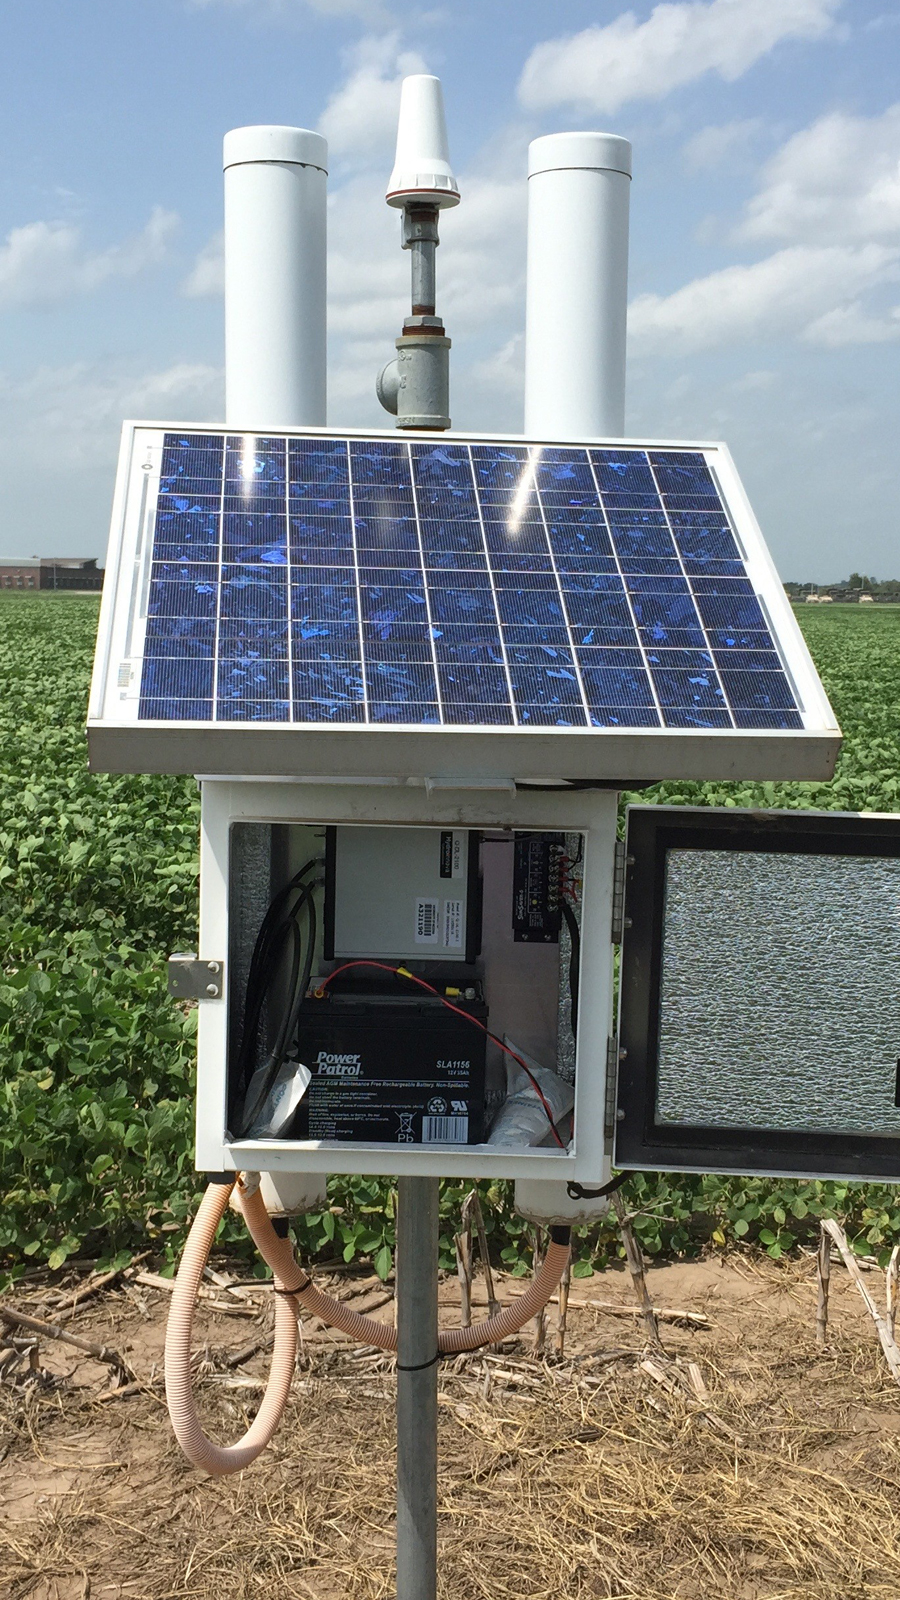 The COSMOS (COsmic-ray Soil Moisture Observing System) soil moisture sensor that measures soil moisture over a 700 m diameter area to a depth of up to 50 cm at the rainfed Carbon Sequestration field site.